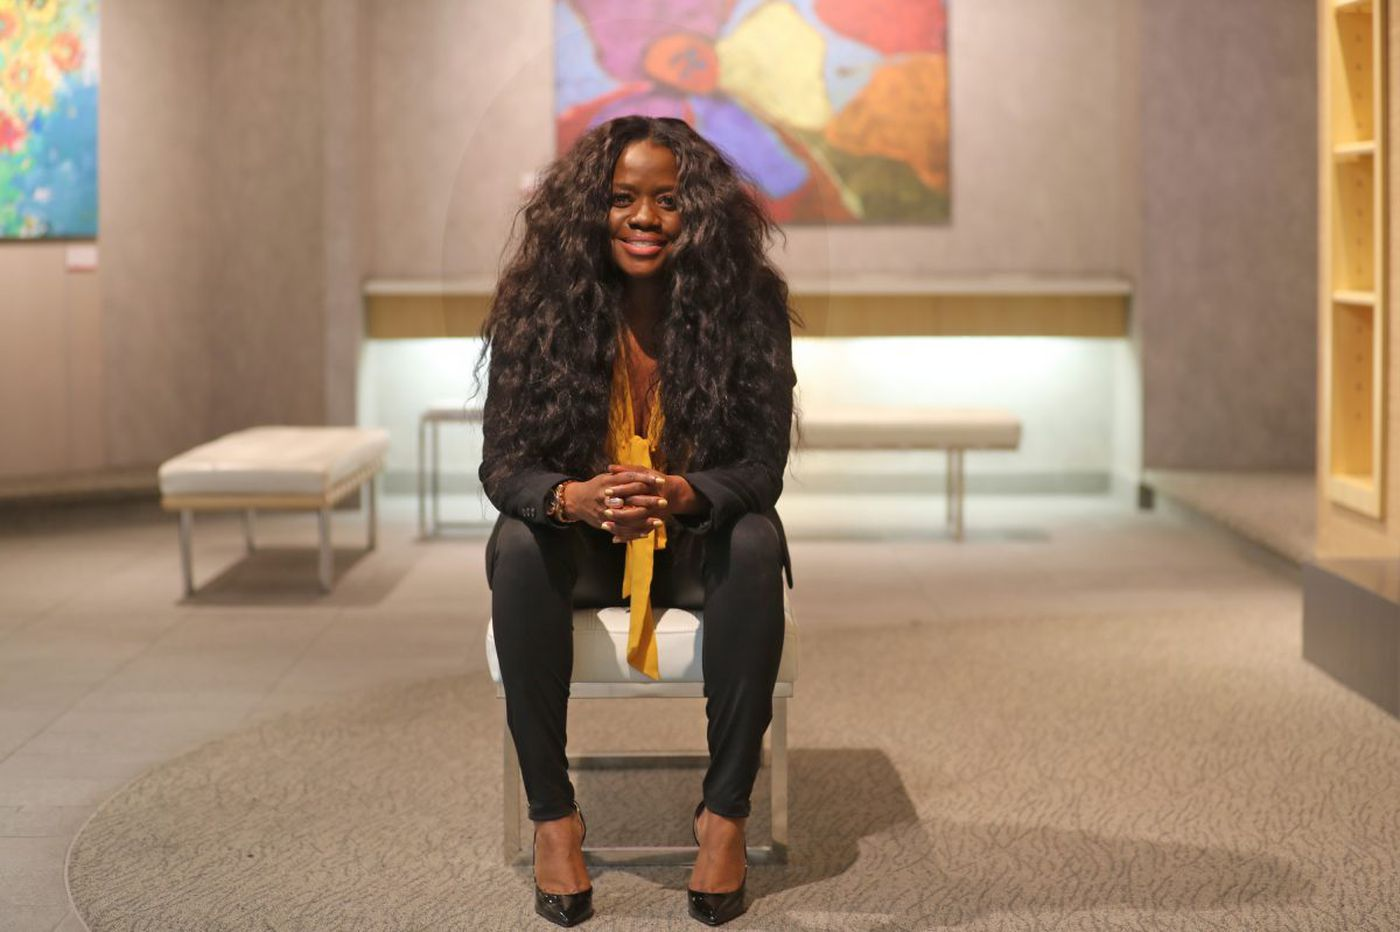 Behind Philly's 'The Made Man' event is a made woman.